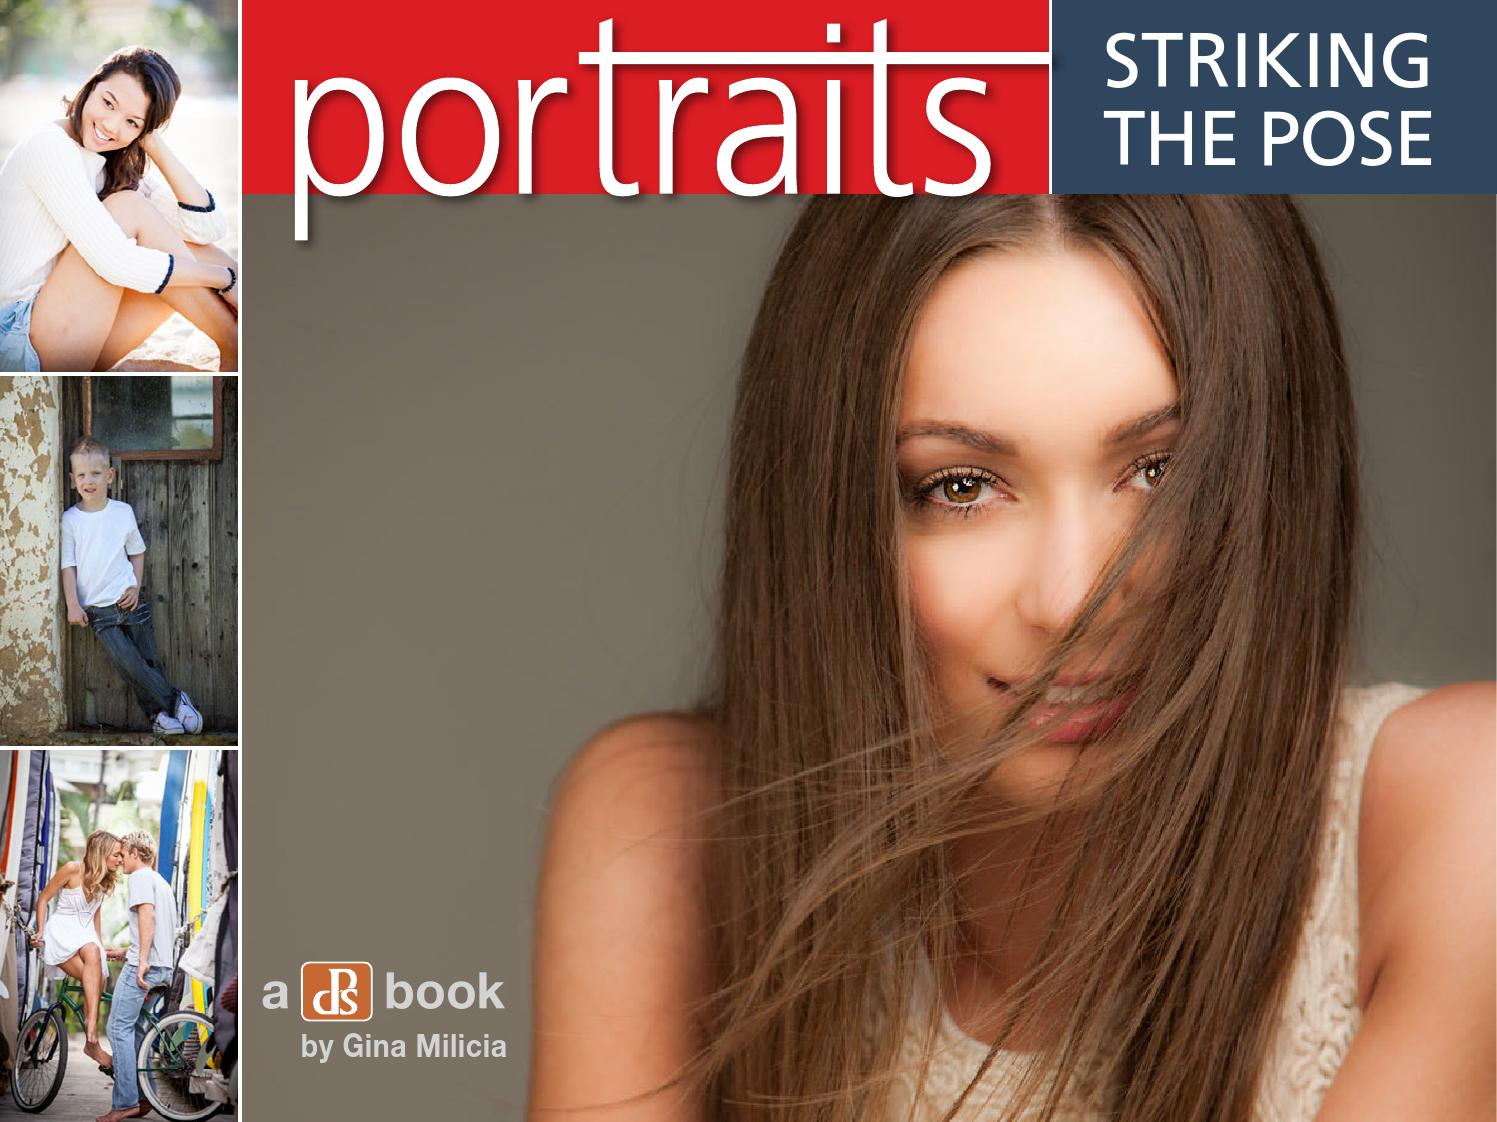 e132437bf Portraits striking the pose ebook by beyond-words - issuu